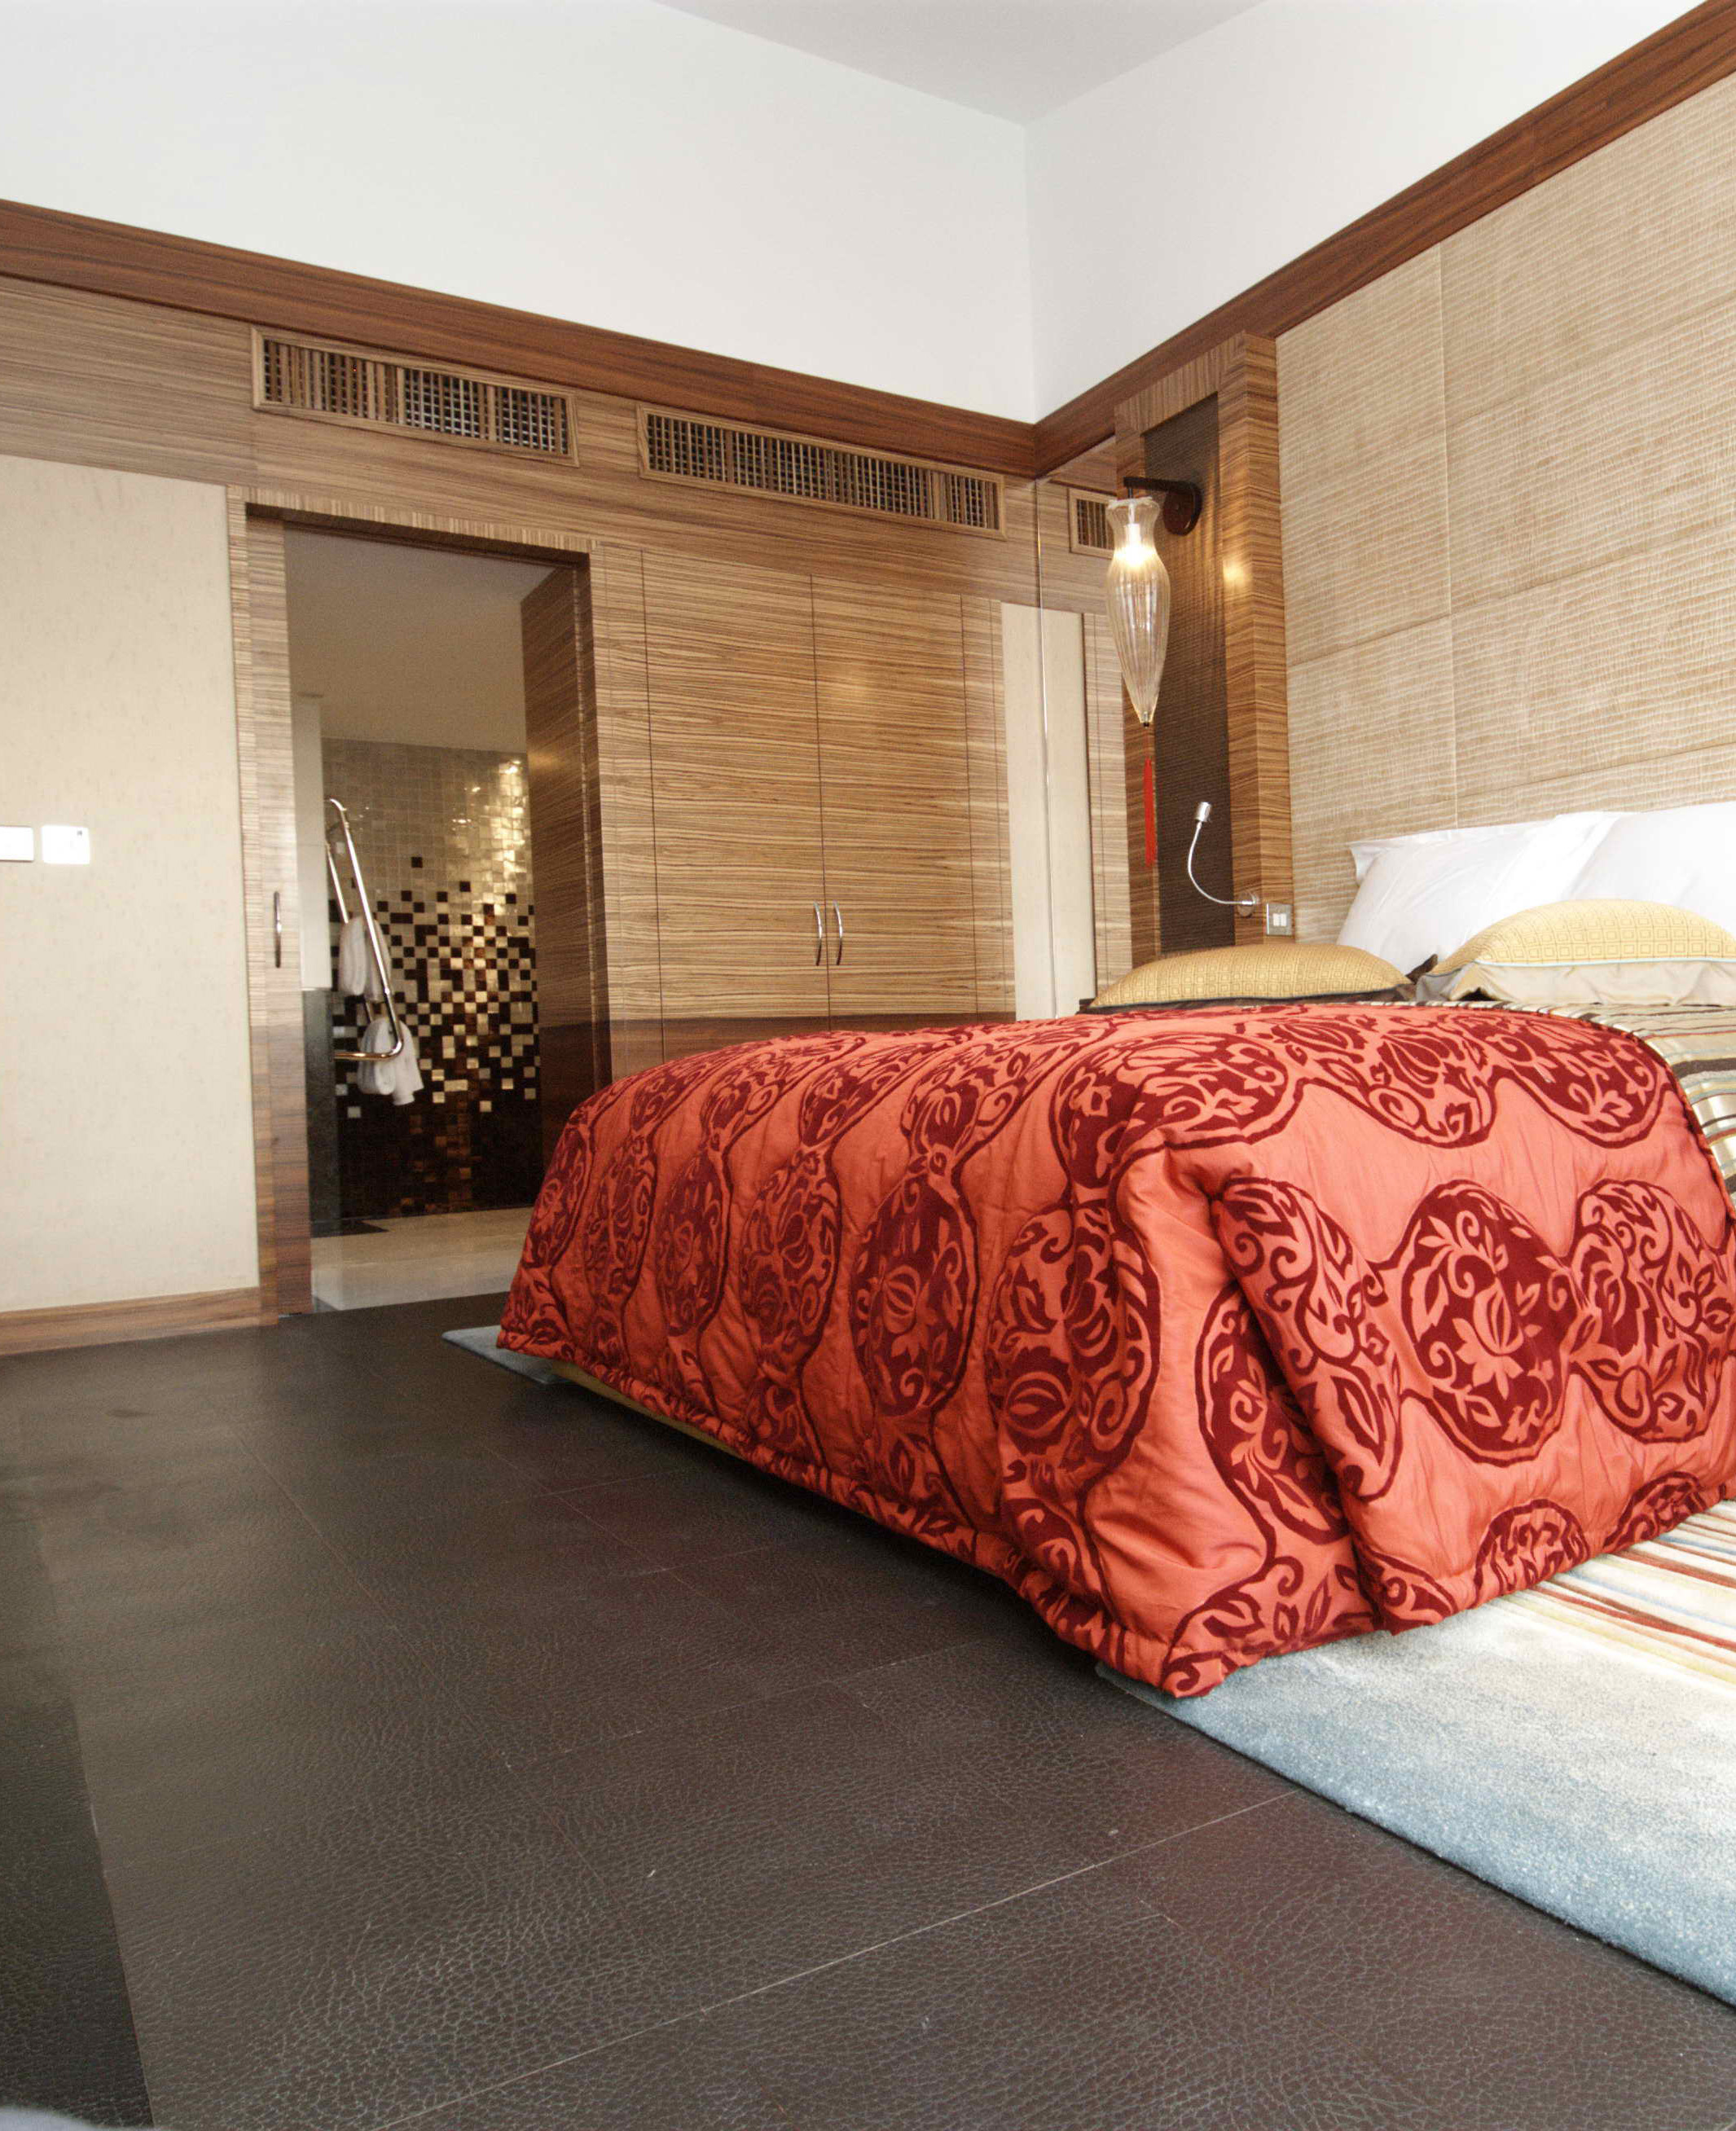 EcoDomo - Custom Leather Floor in Hotel copy.jpg